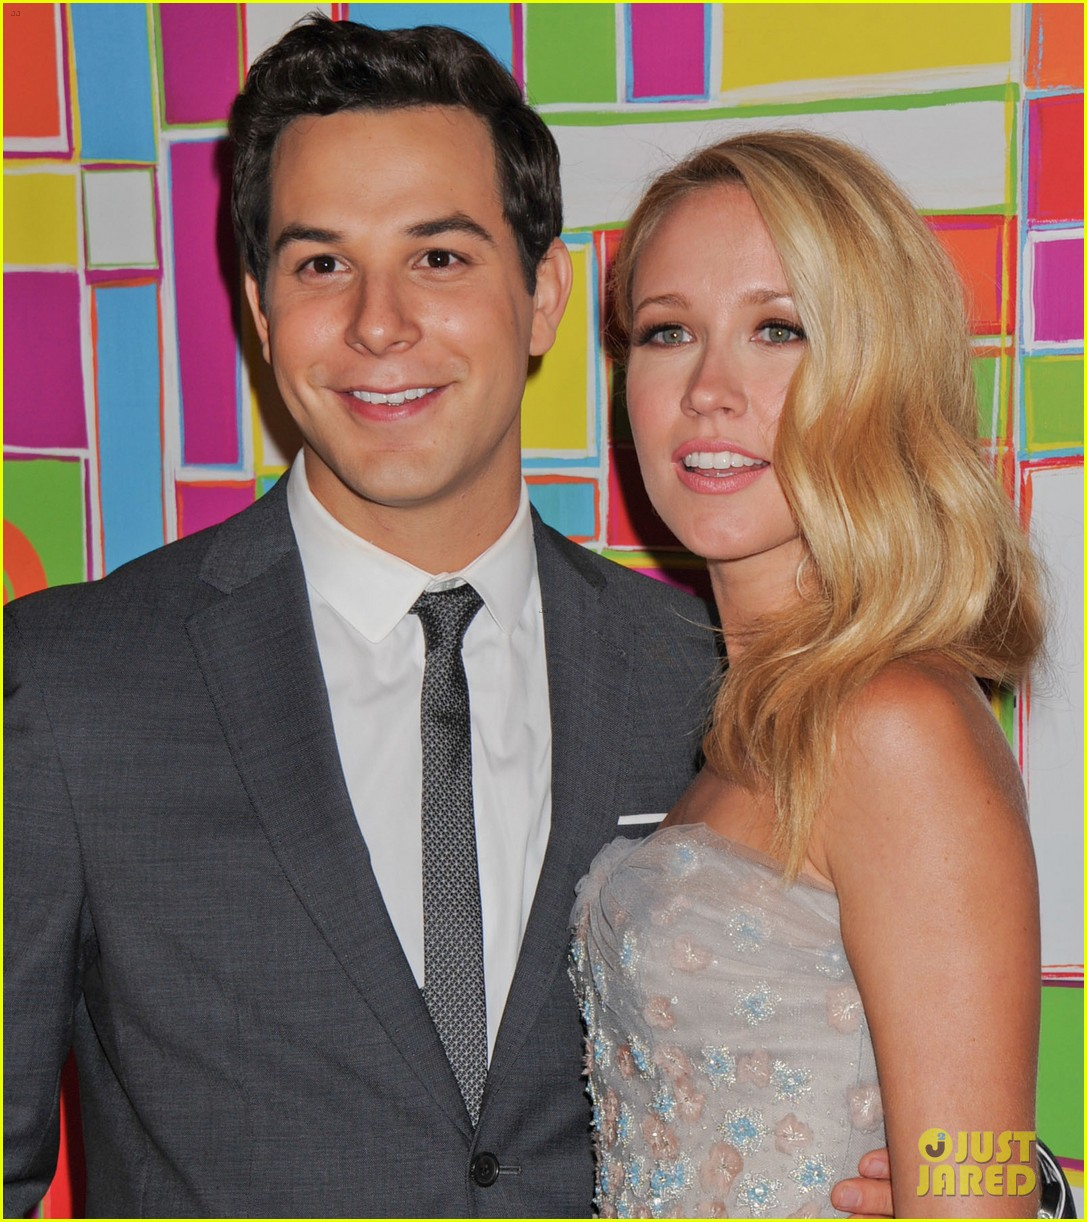 anna camp skylar astin are picture perfect duo at hbos emmys 08